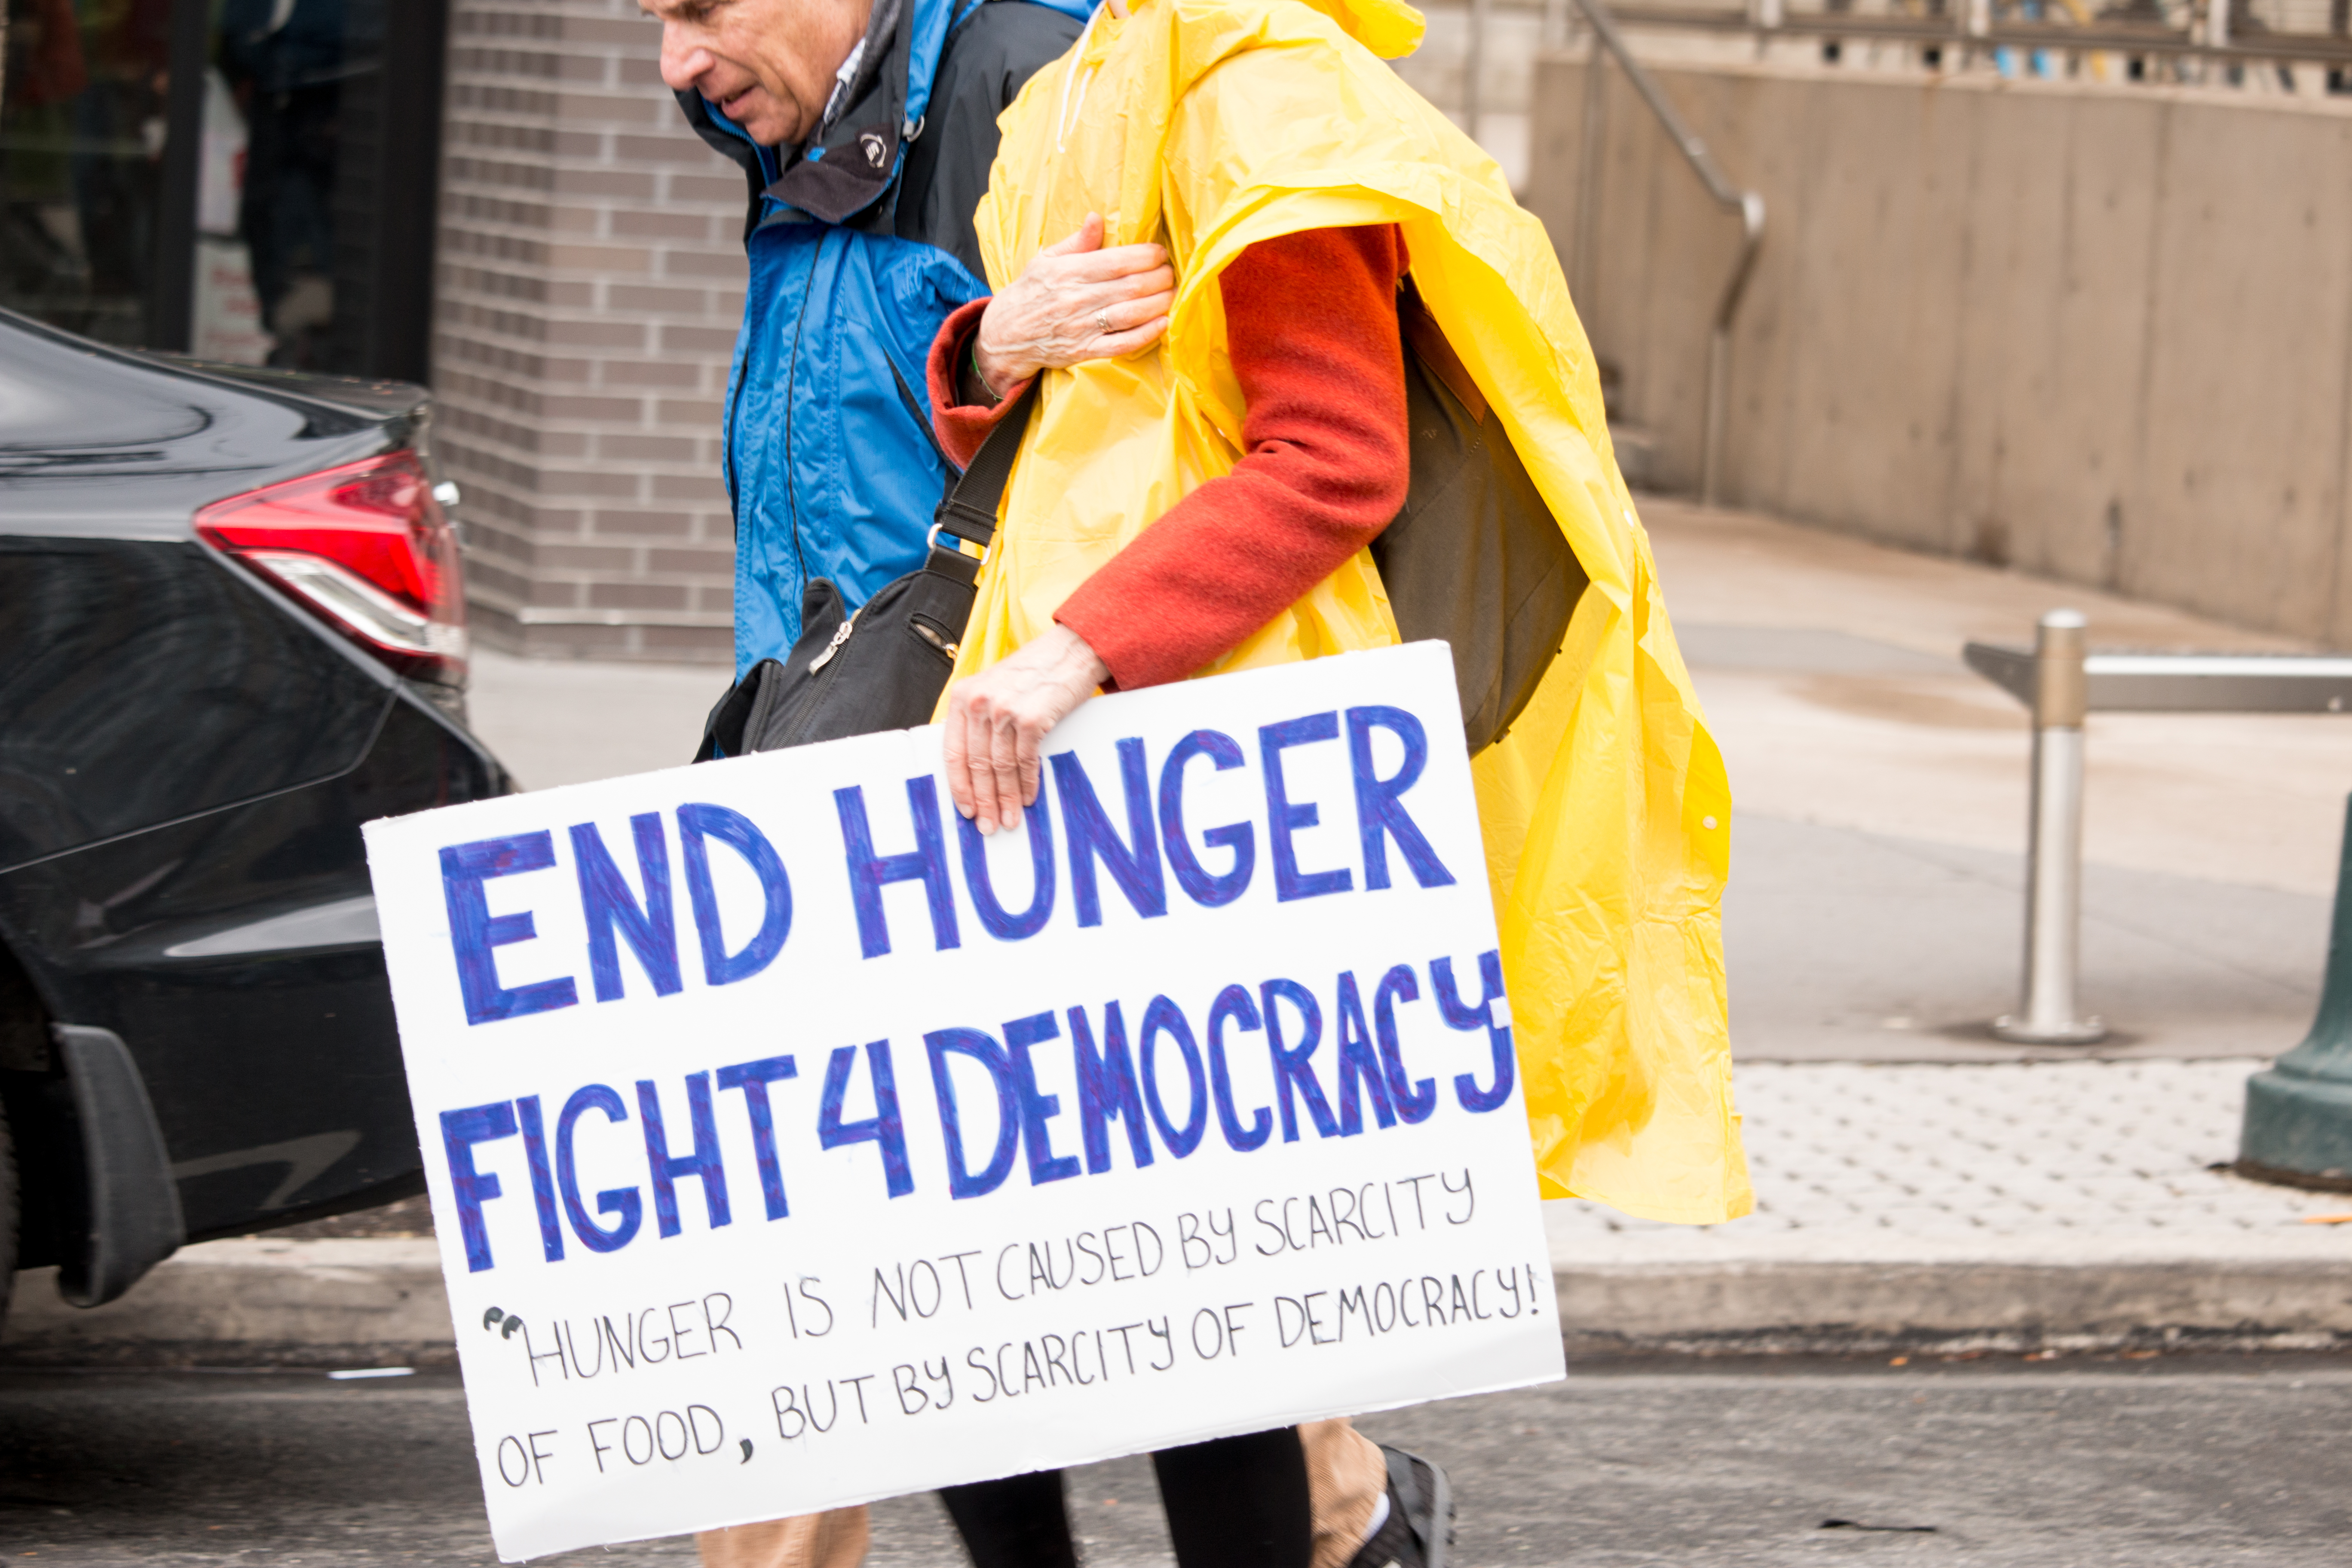 Democracy Spring A March From Philadelphia To Dc The